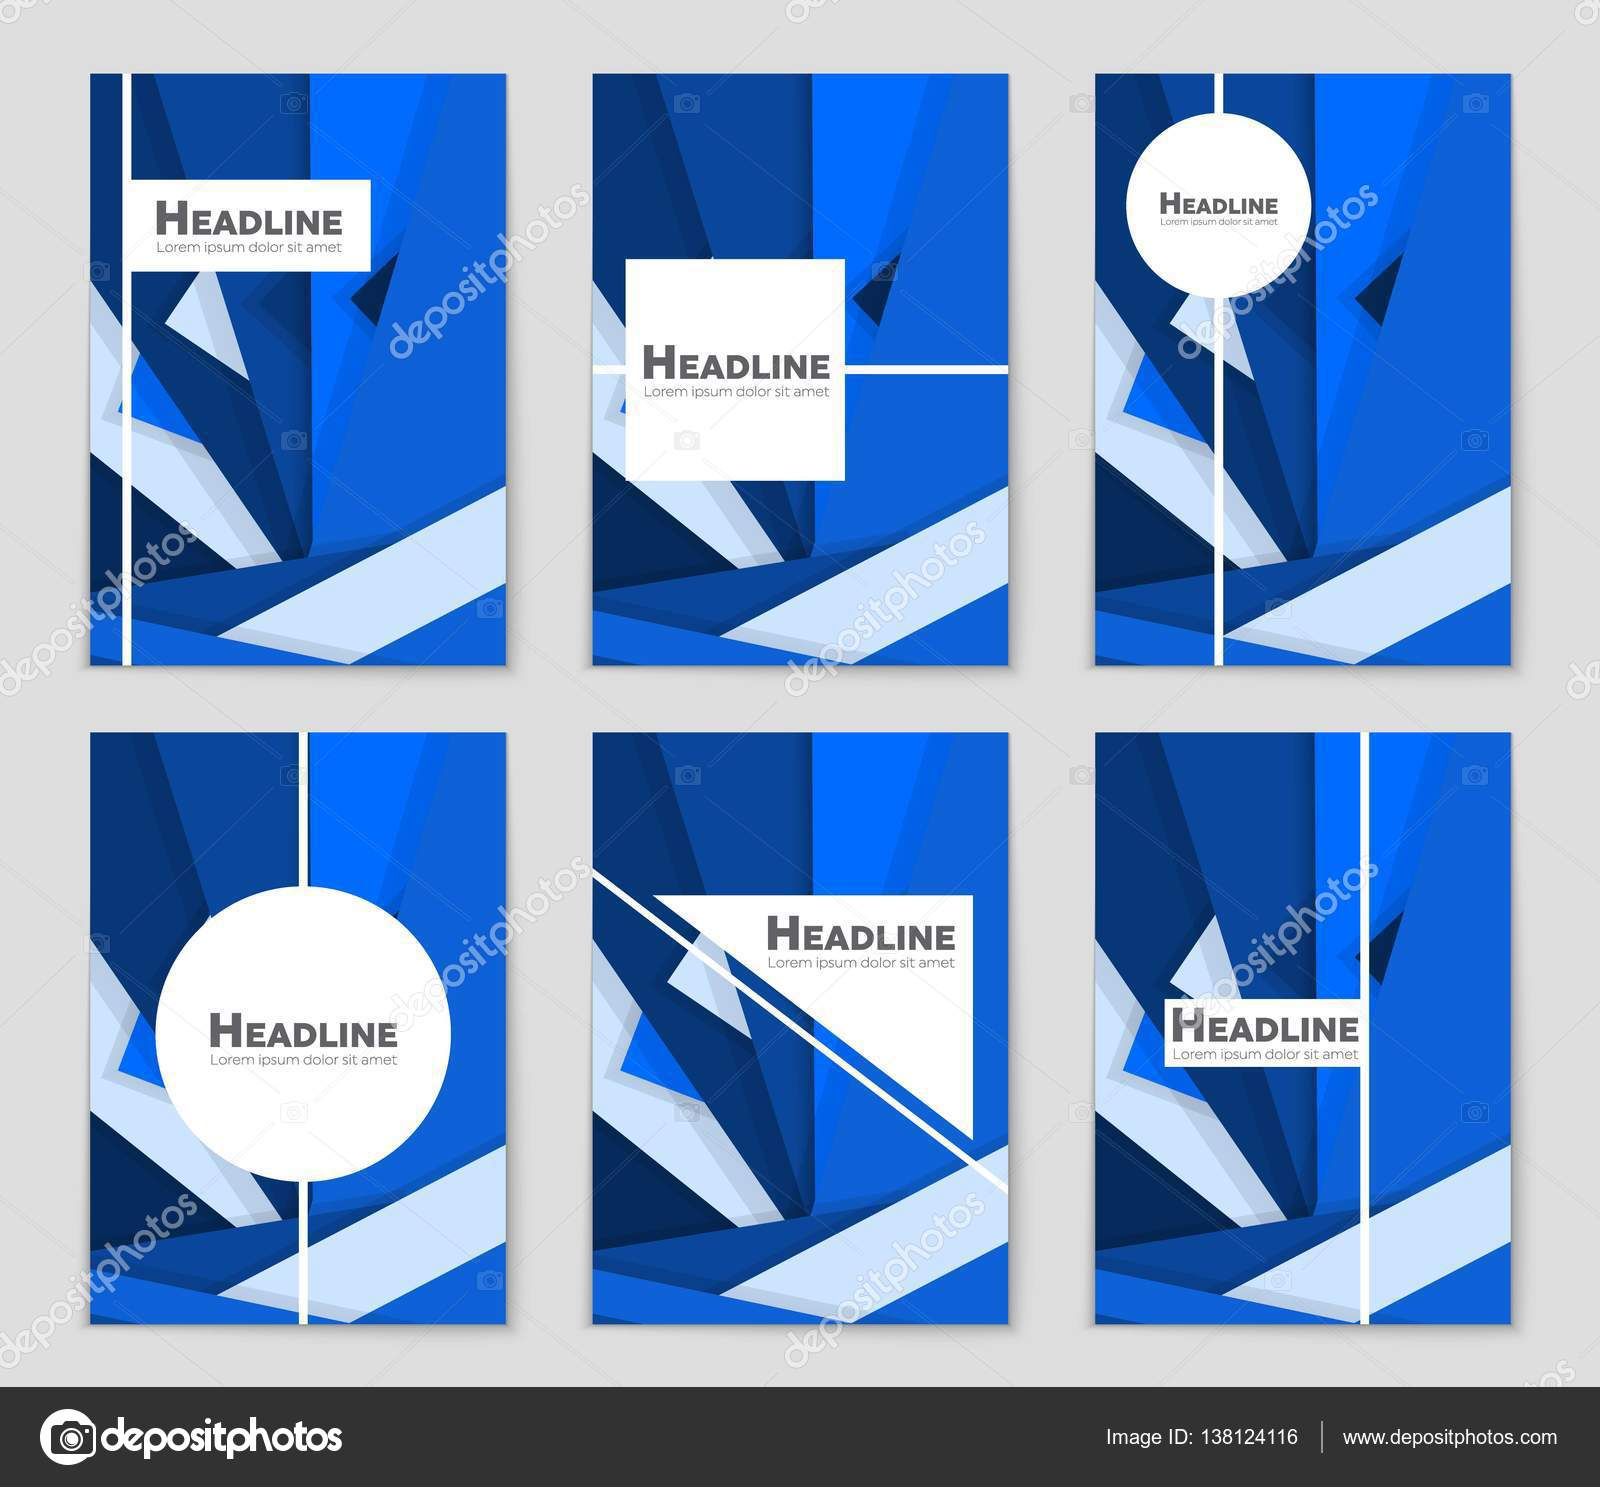 Abstract Vector Layout Background Set For Art Template Design